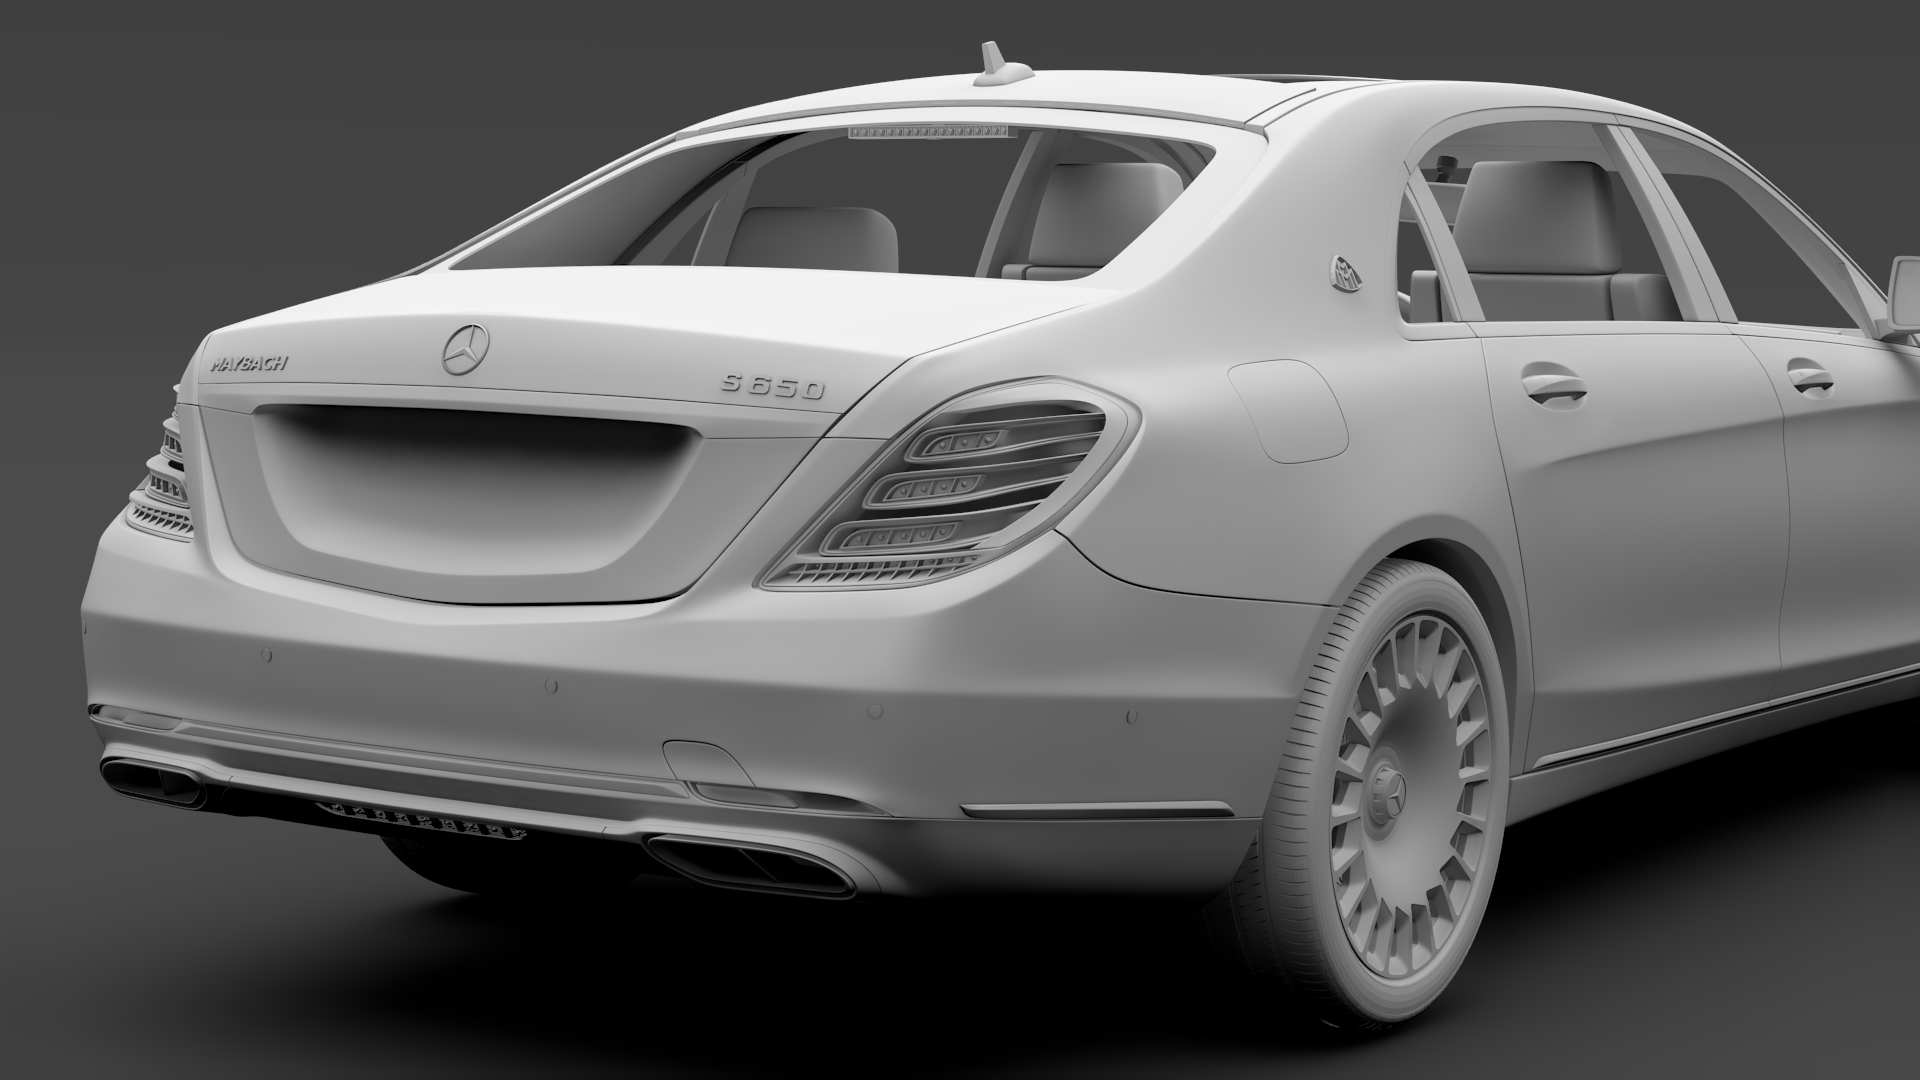 mercedes maybach s 650 x222 2018 3d model 3ds max fbx c4d lwo ma mb hrc xsi obj 284547